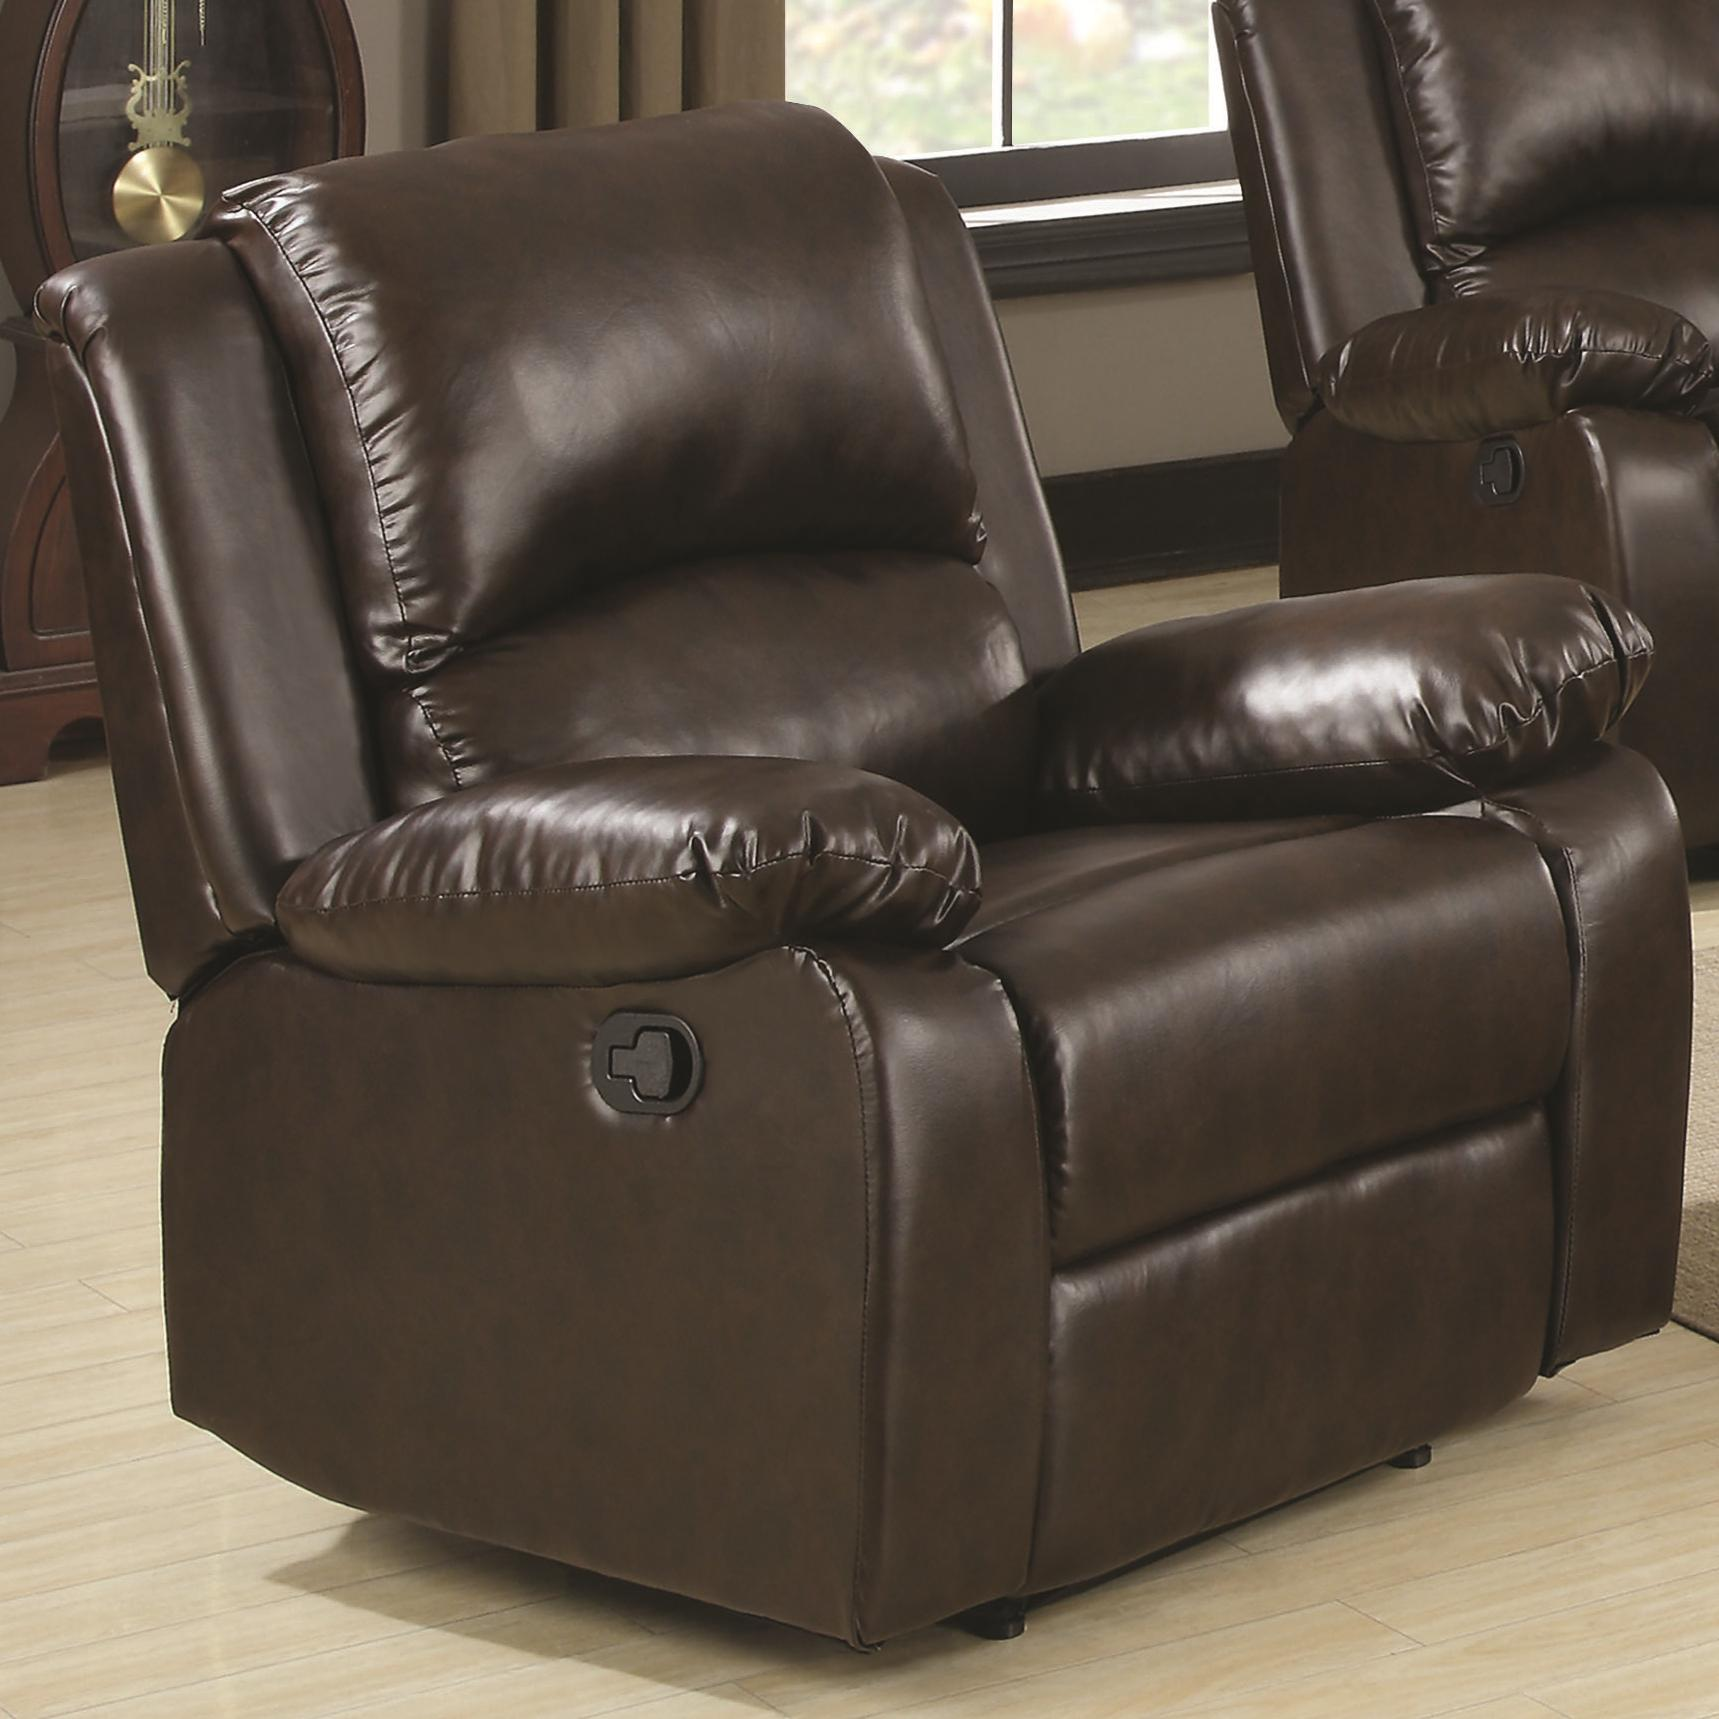 Boston Recliner by Coaster at Standard Furniture